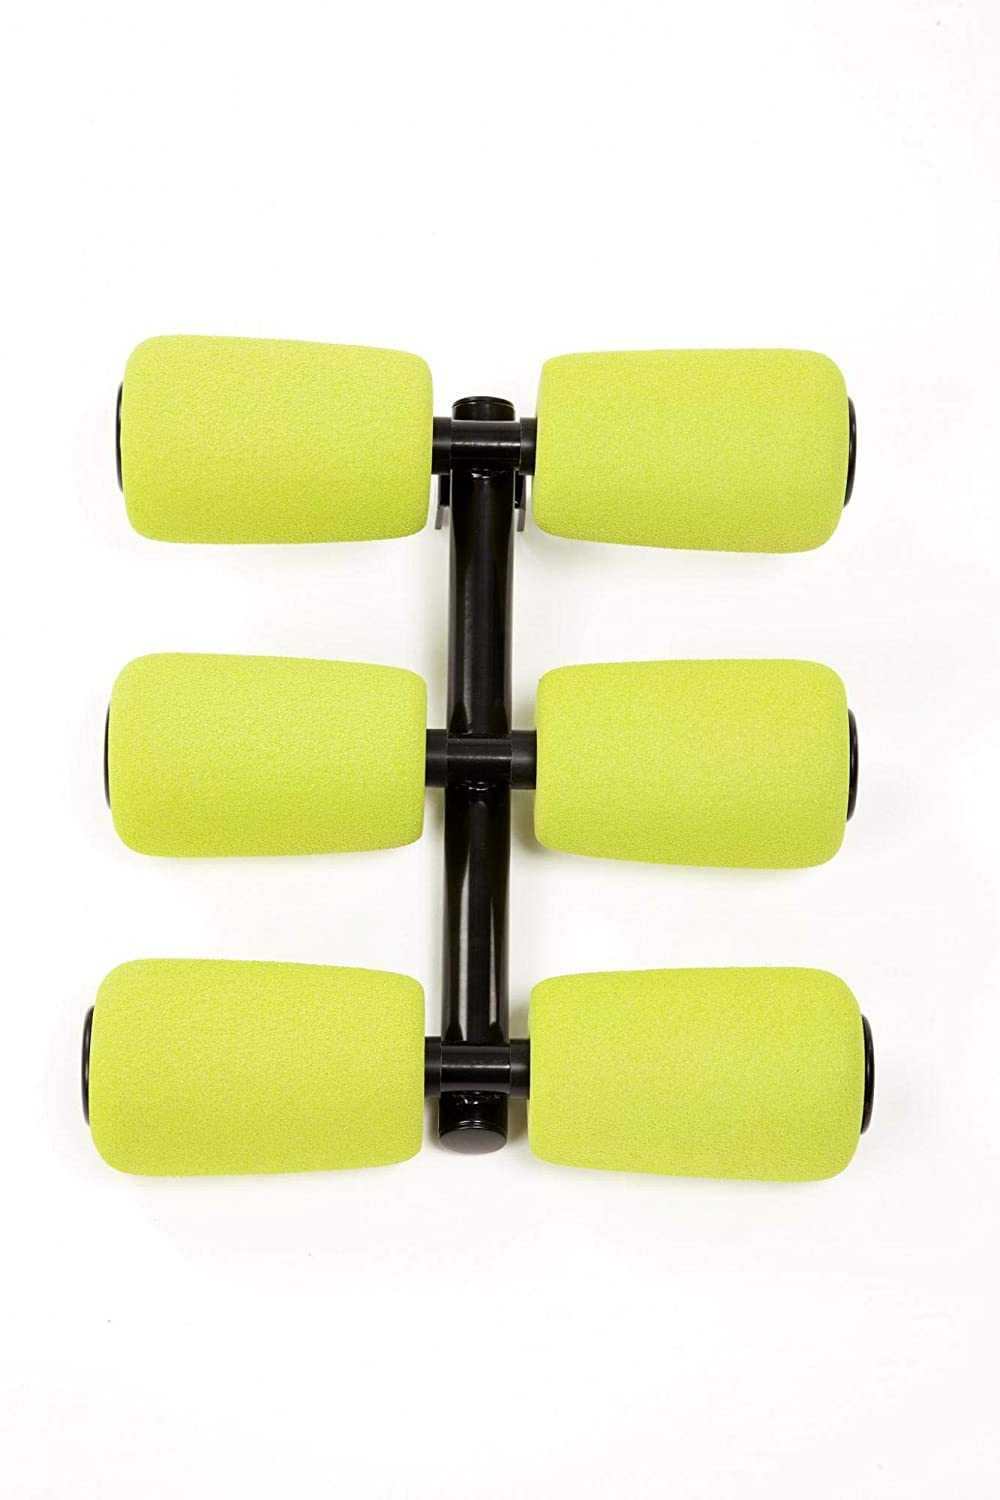 AB Doer 360 Accessory – 6-Pack Massage Roller Massages and Stretches Your Entire Back and Spine A Must-Have Accessory